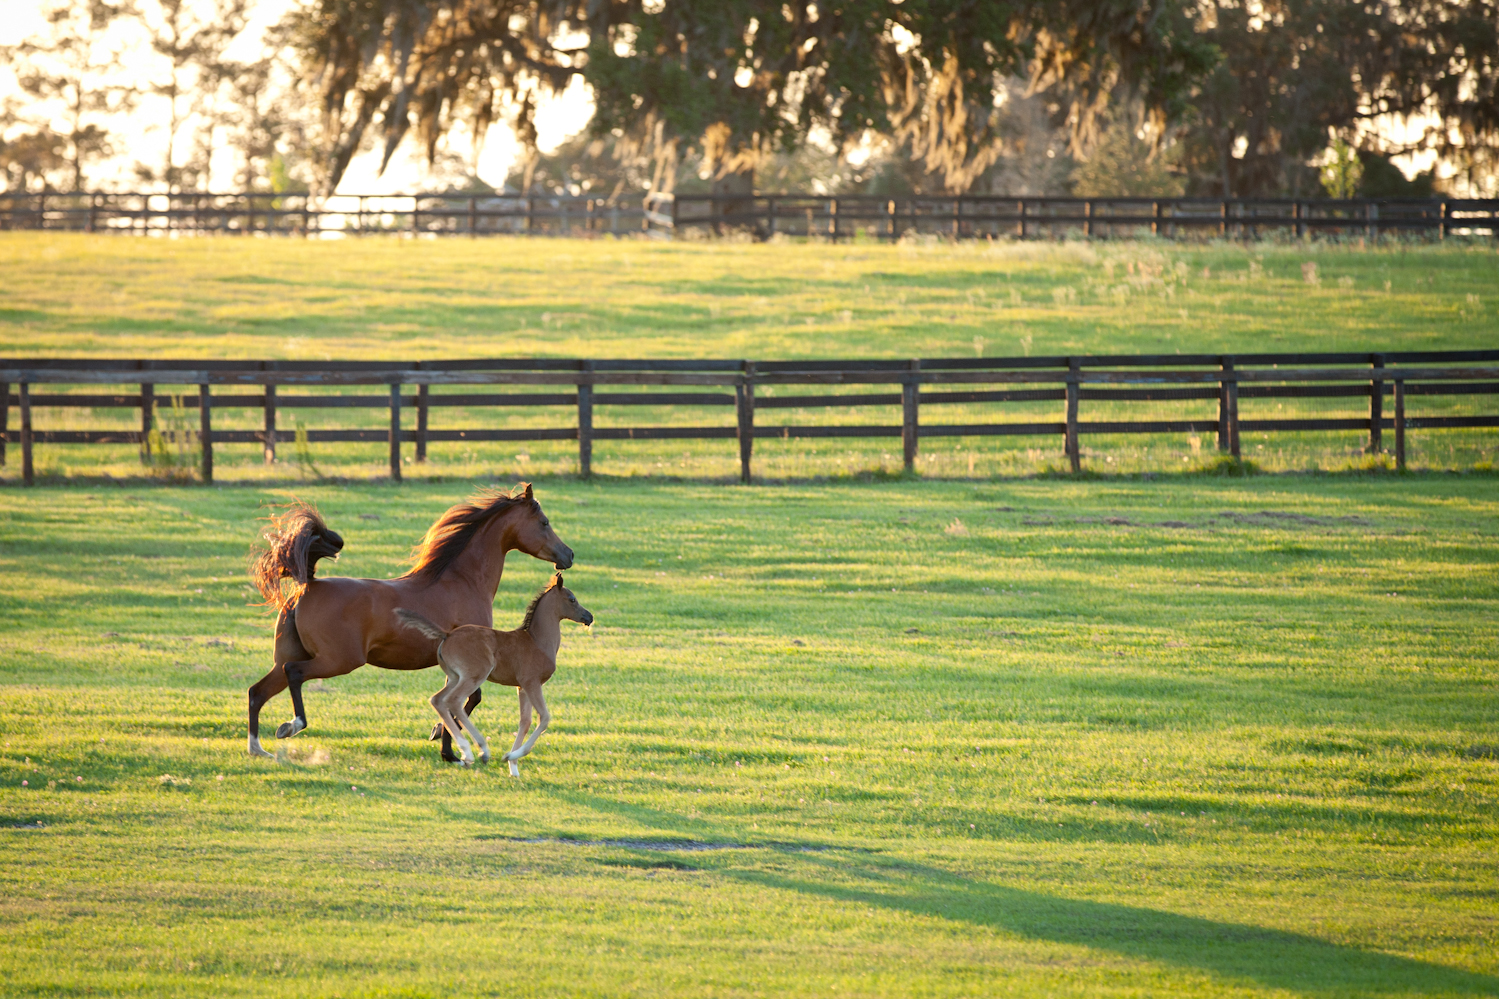 The Equine Breeding Blog | Equine Reproduction News